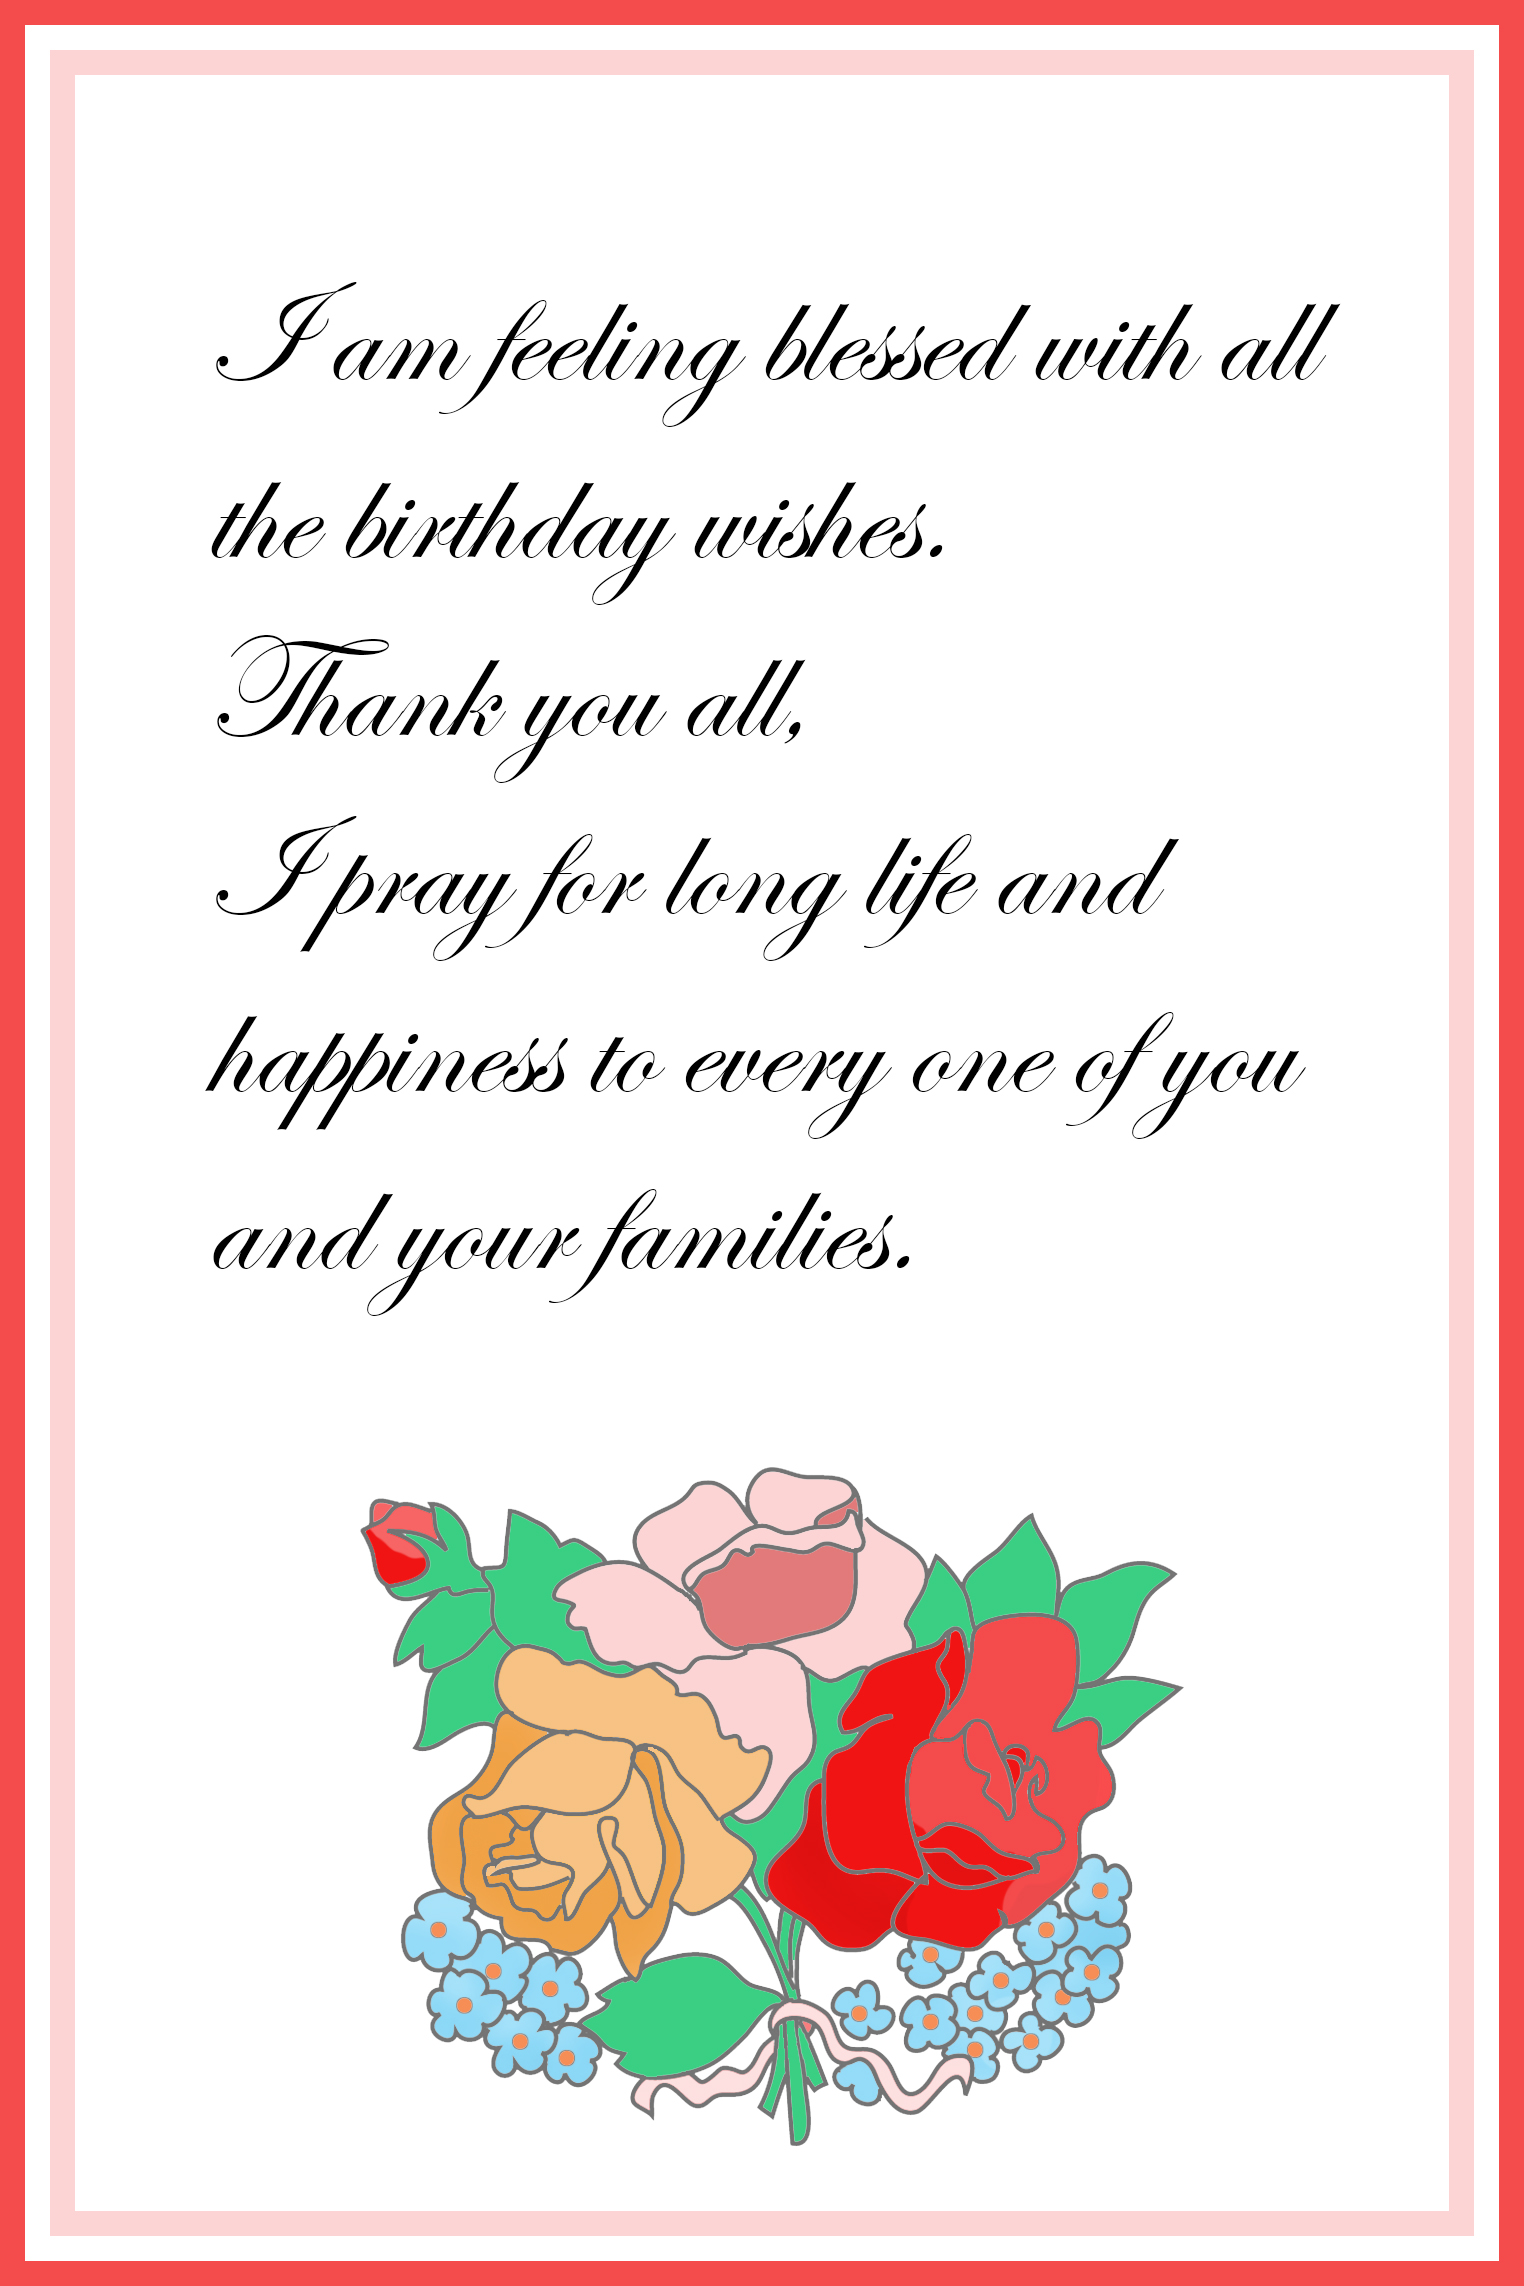 Printable thank you cards free printable greeting cards birthday thank you card s birthday thank you card with message izmirmasajfo